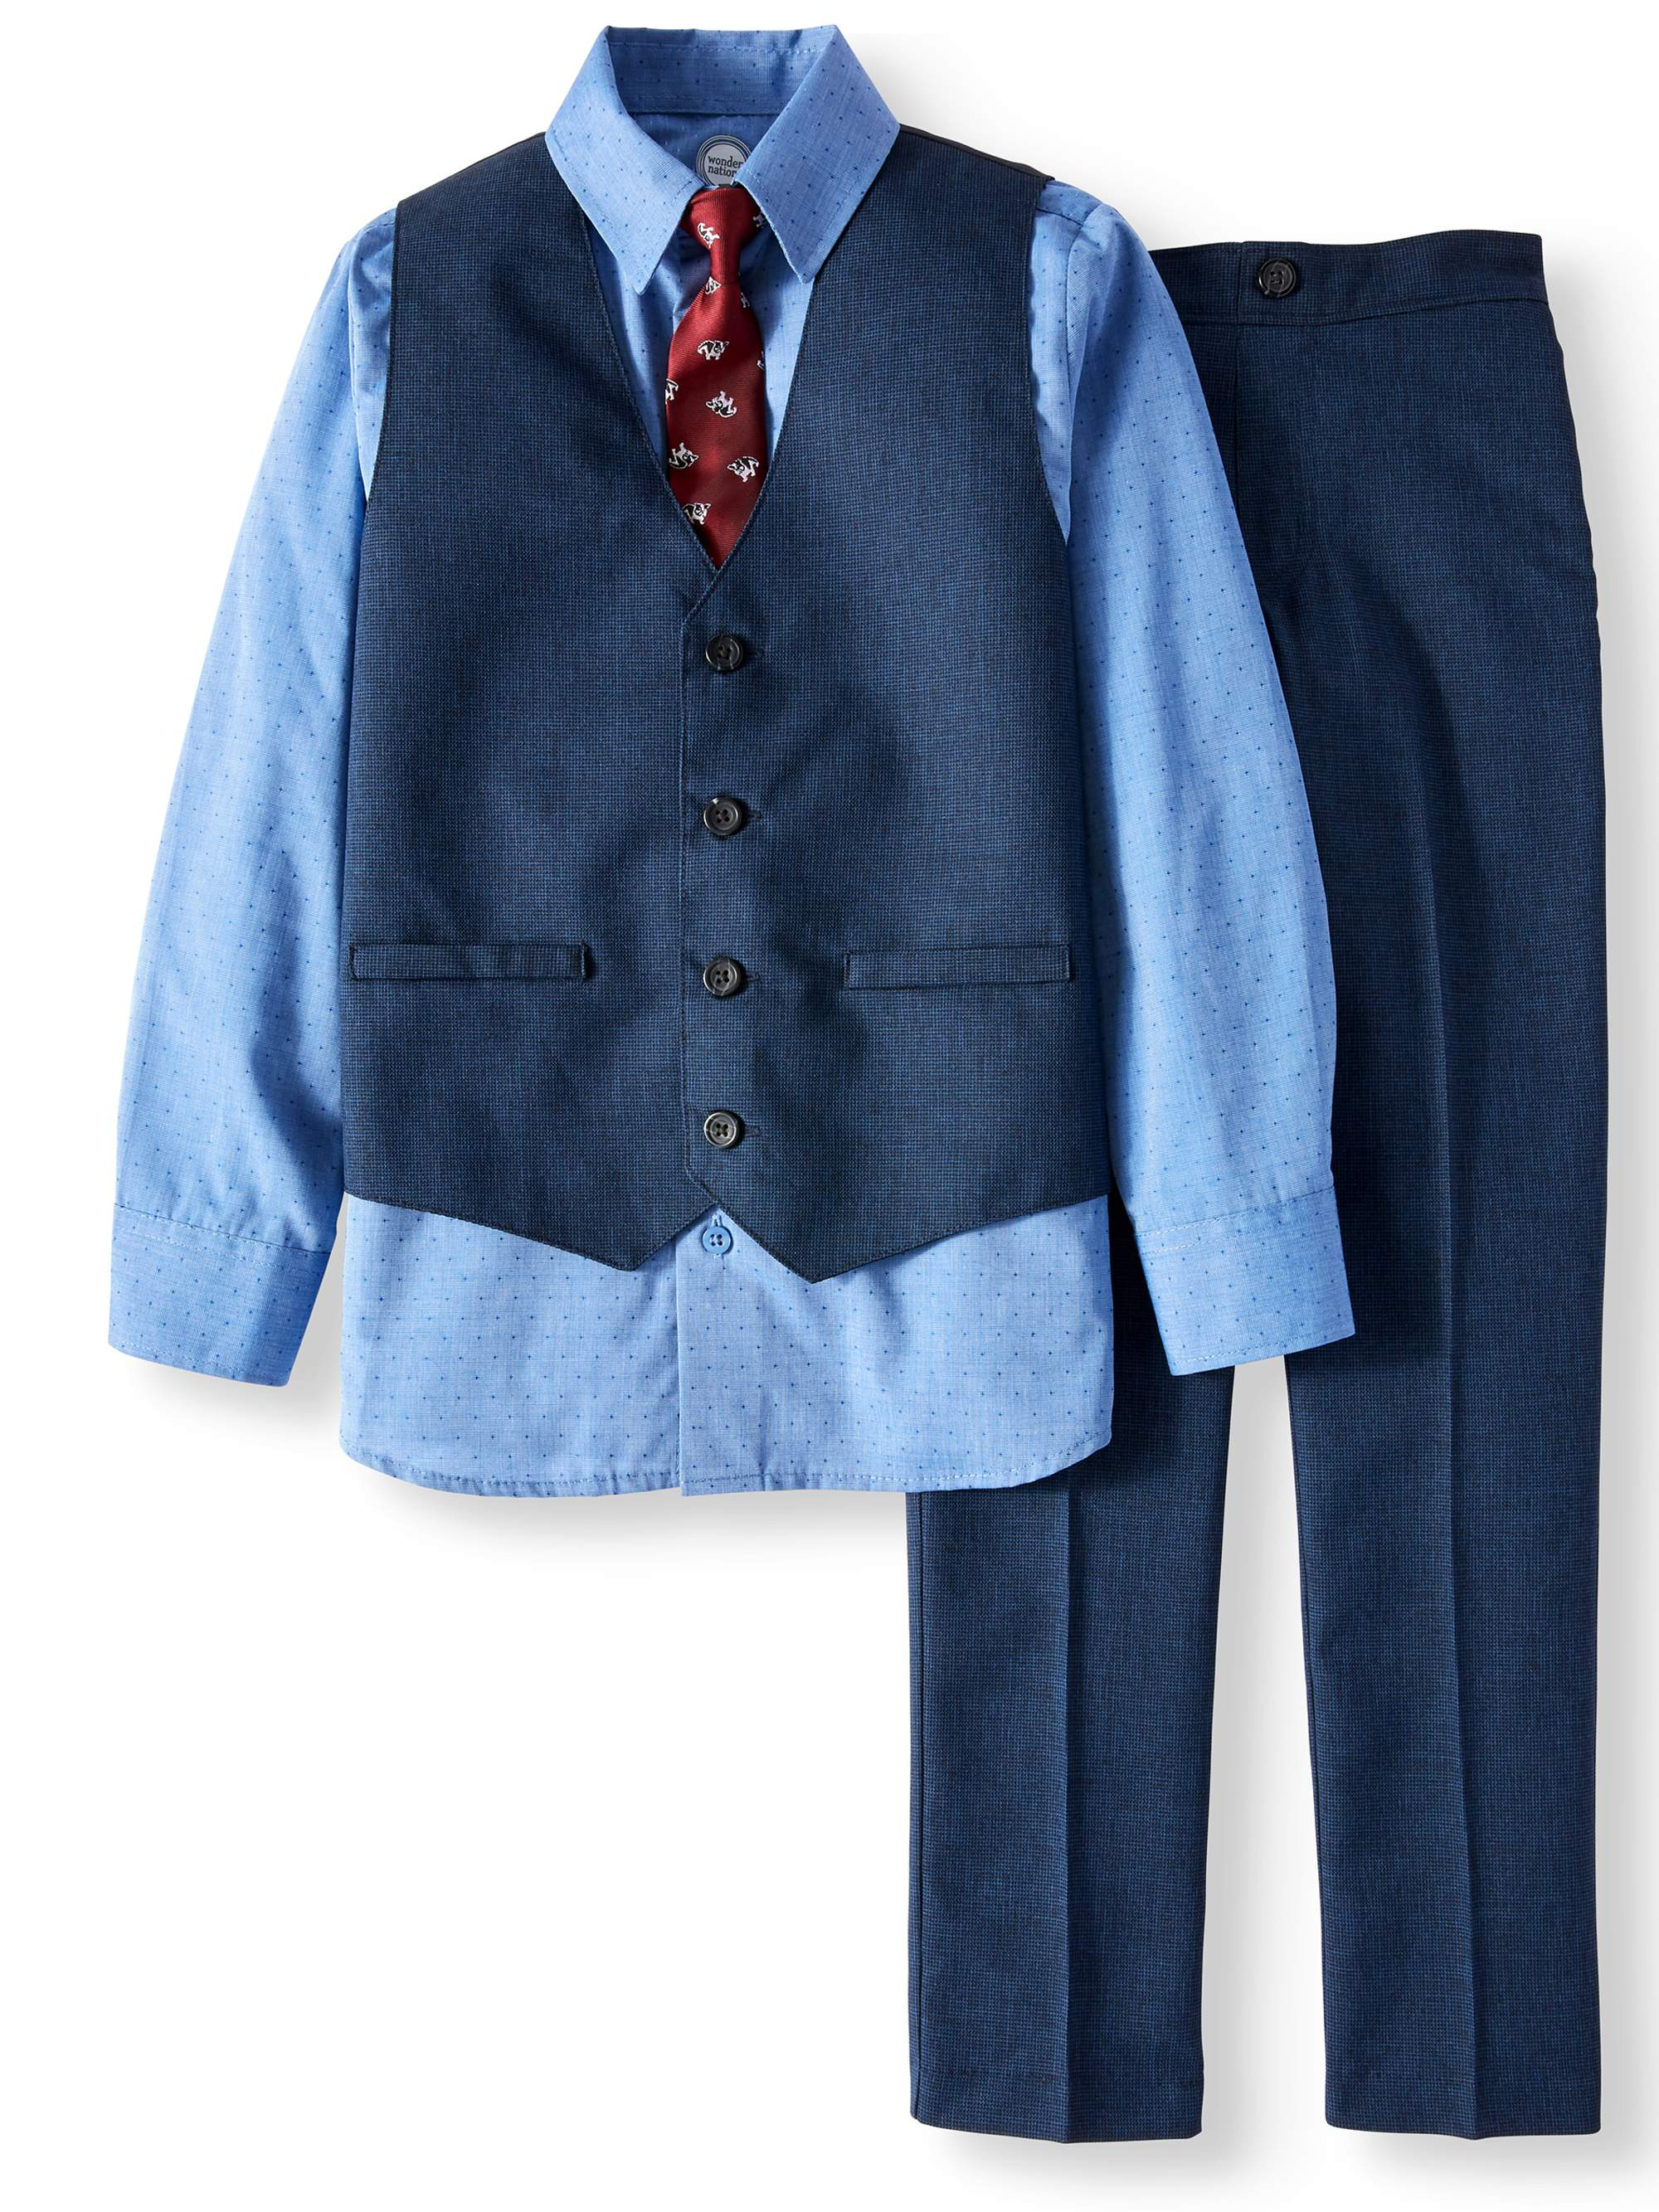 372fcd9f Blue Mini Check Dressy Vest with Dress Shirt, Matching Pants & Dog Print  Tie Outfit